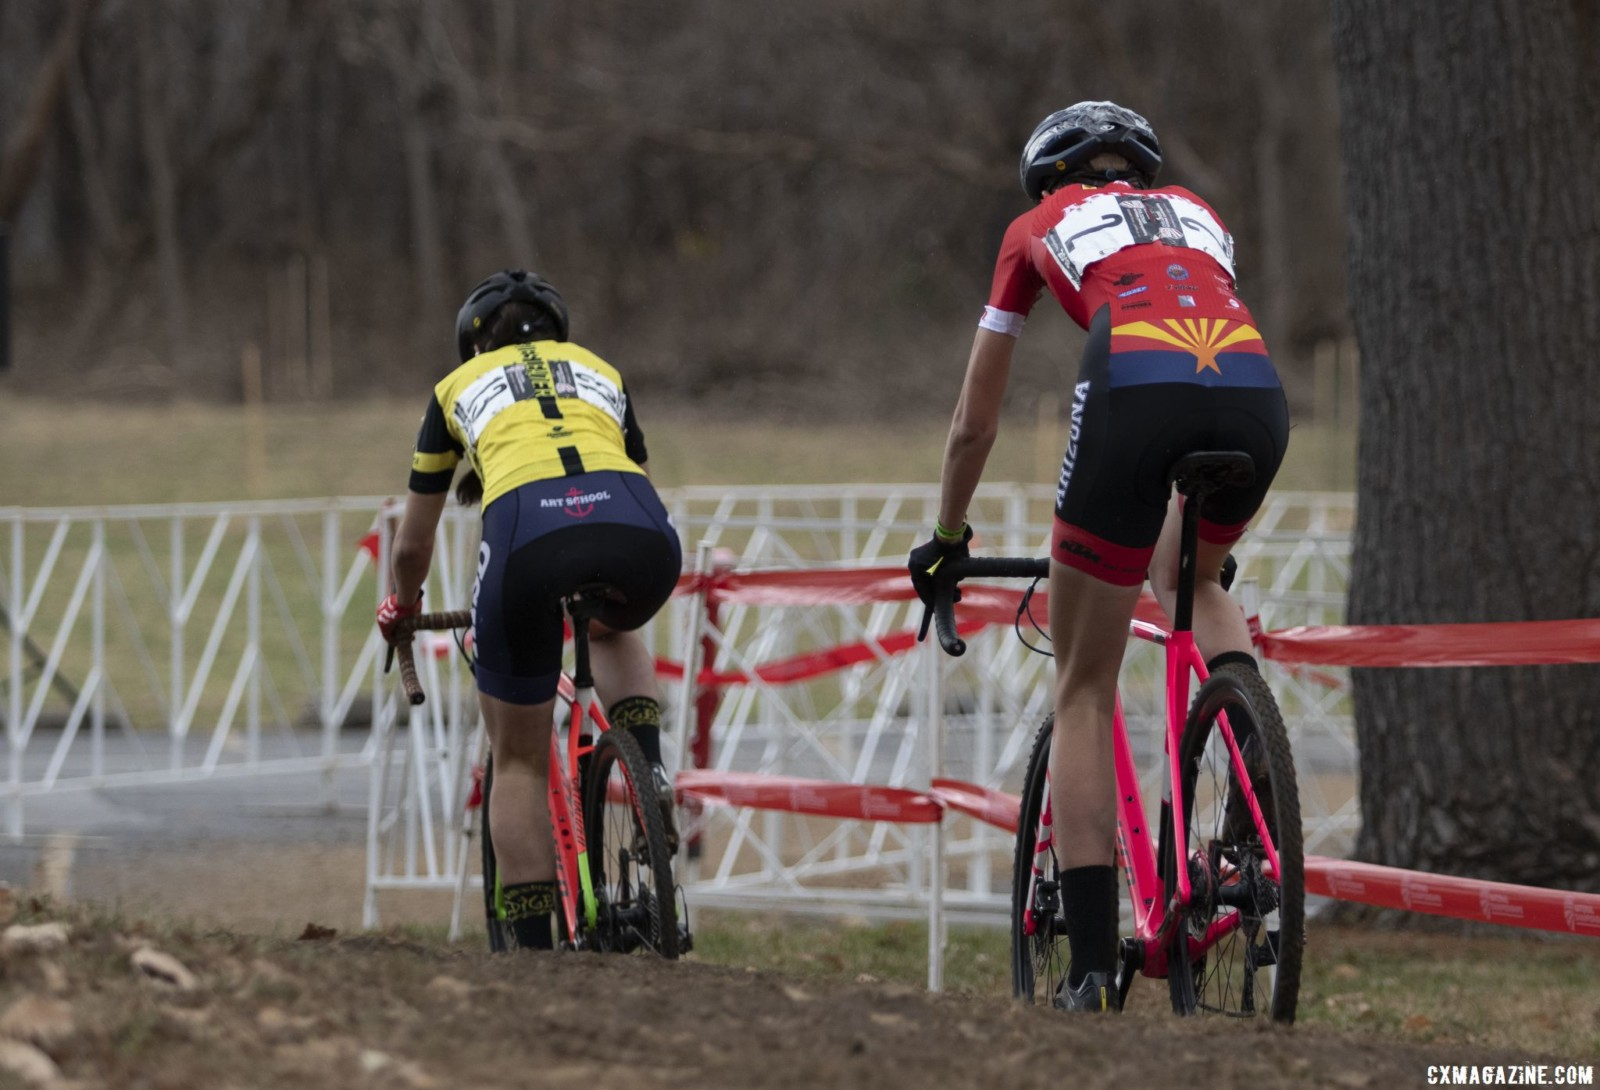 After a bike change, Rossi reclaimed the lead with Oneill in persuit. Collegiate Club Women. 2018 Cyclocross National Championships, Louisville, KY. © A. Yee / Cyclocross Magazine